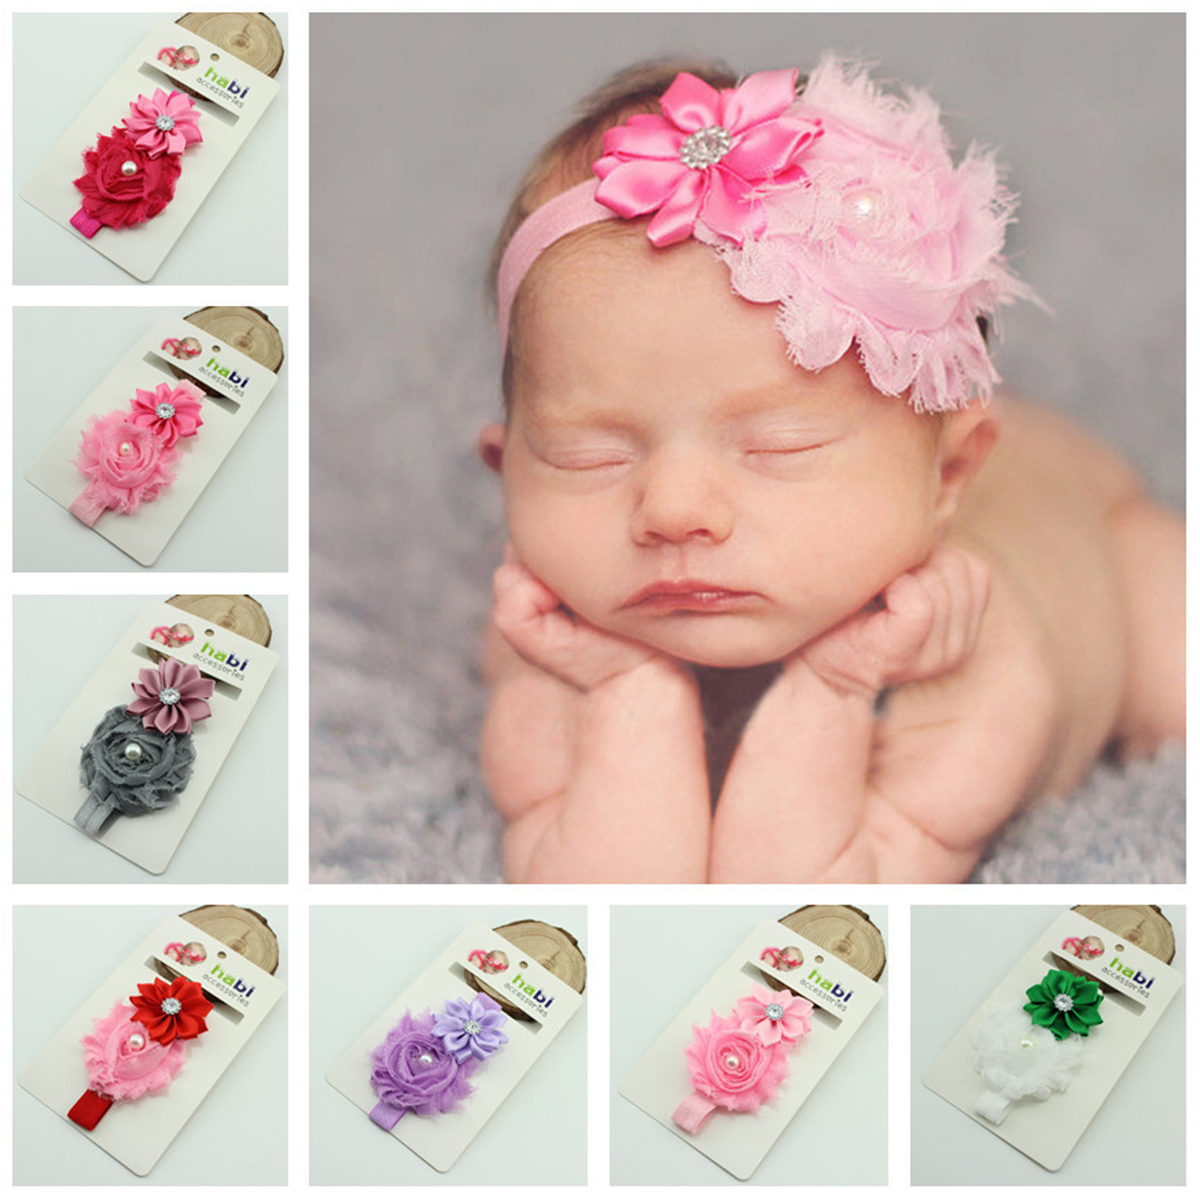 Cute Infant Baby Girls Sweet Flower & Pearl Decor Elastic Headband Hair Band Hair Accessories Photo Props,10 Colors Pack